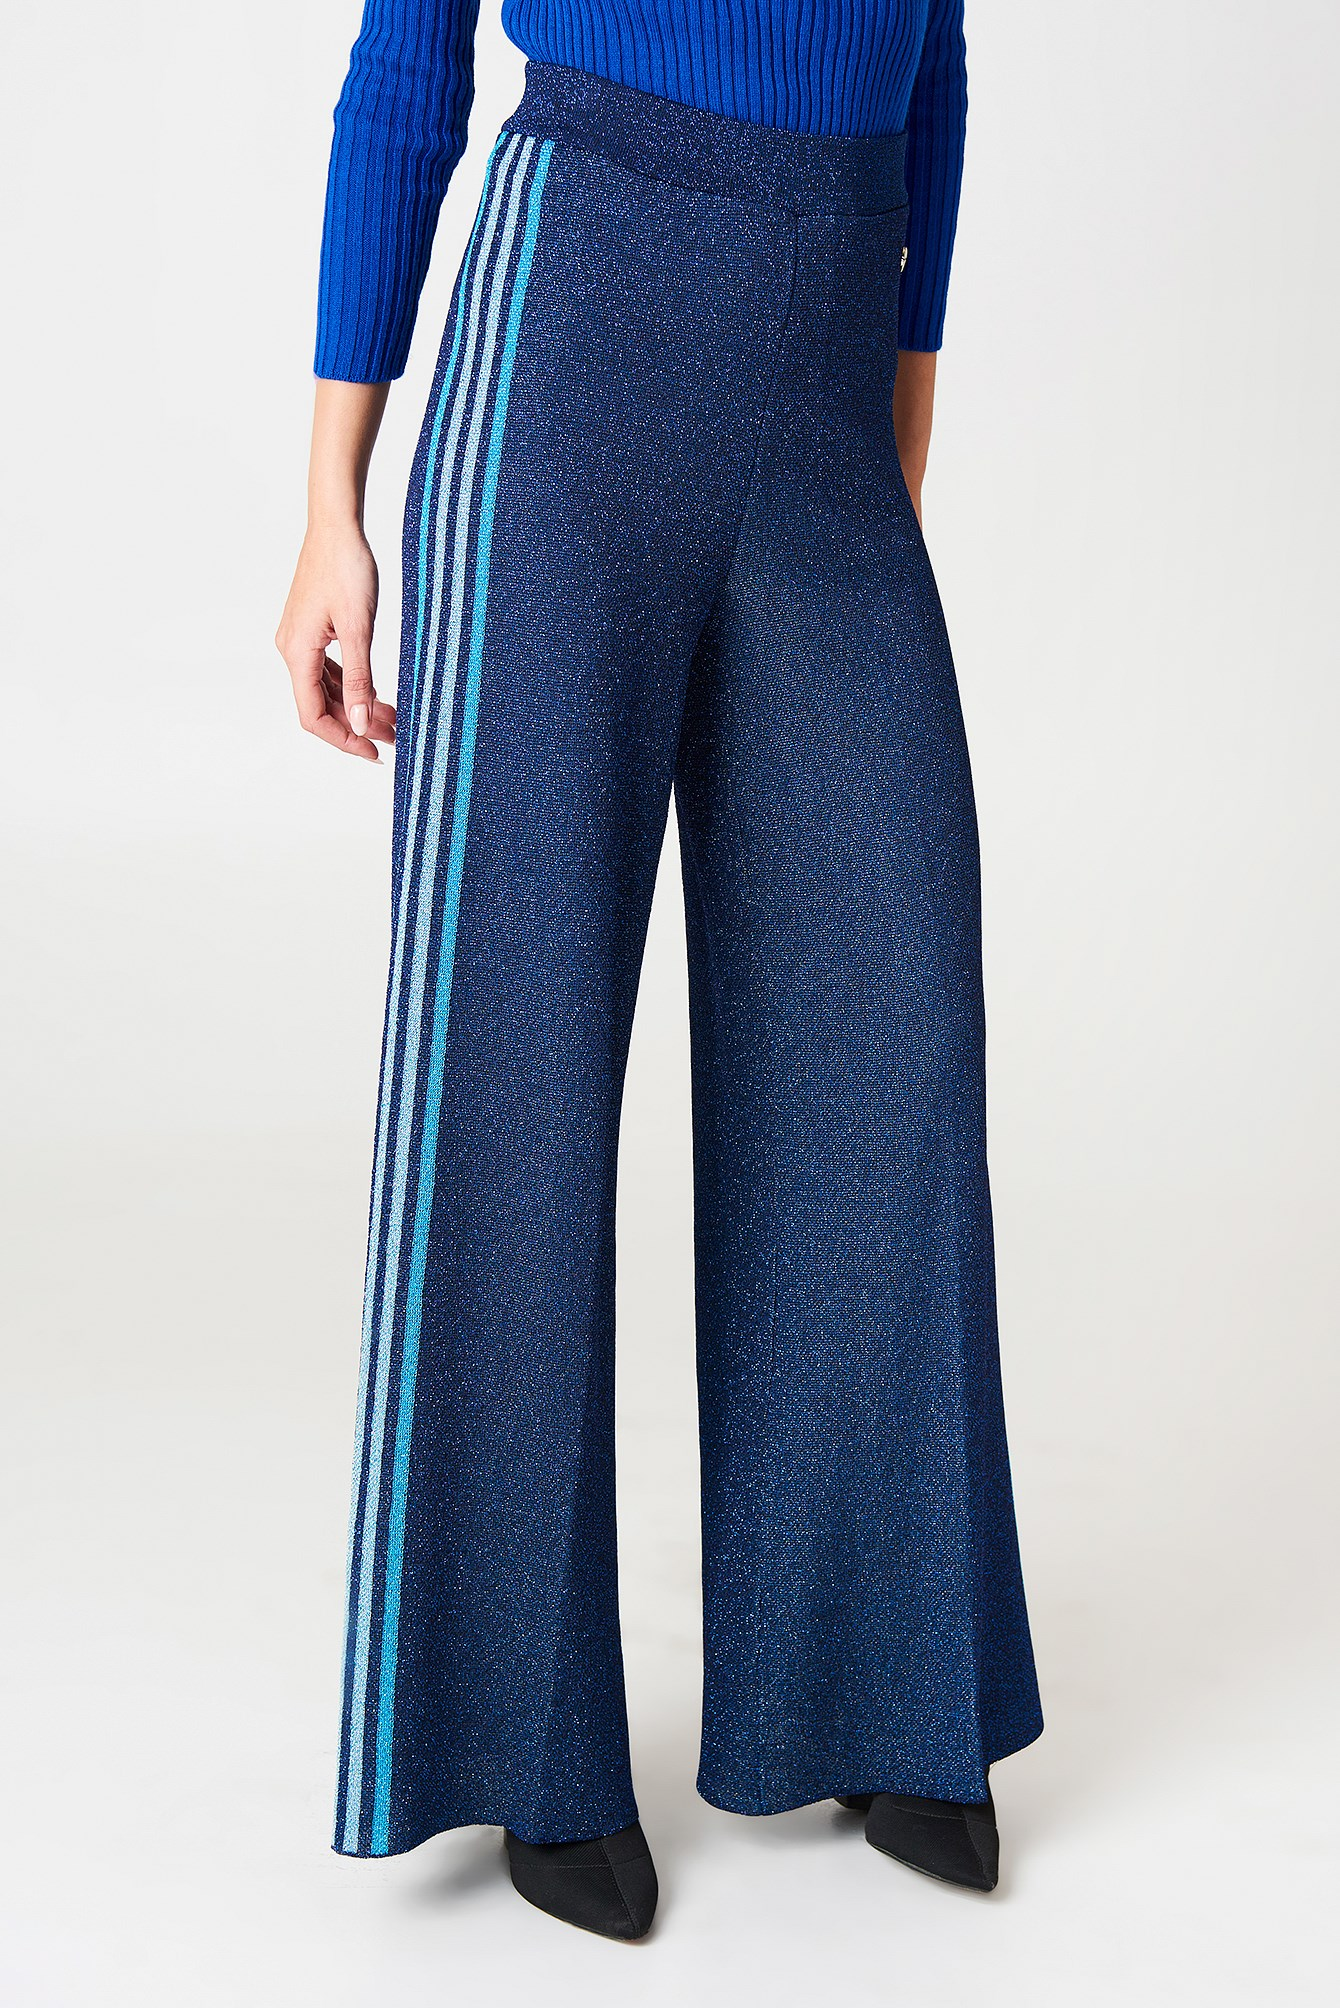 Pantalone Blu Royal Pants NA-KD.COM